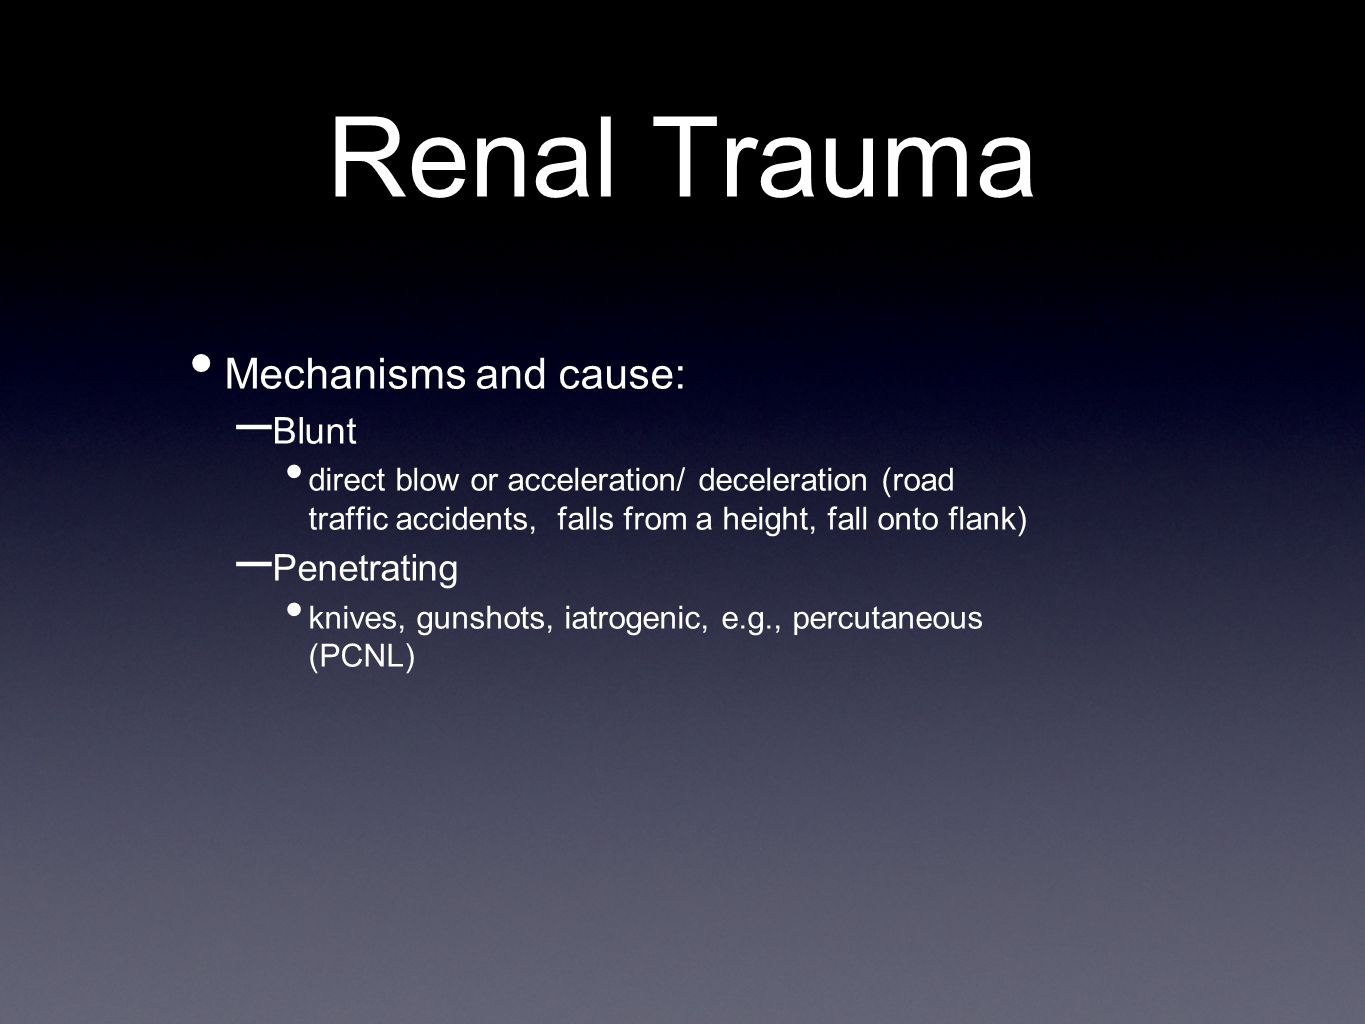 Renal Trauma Mechanisms and cause: – Blunt direct blow or acceleration/ deceleration (road traffic accidents, falls from a height, fall onto flank) – Penetrating knives, gunshots, iatrogenic, e.g., percutaneous (PCNL)